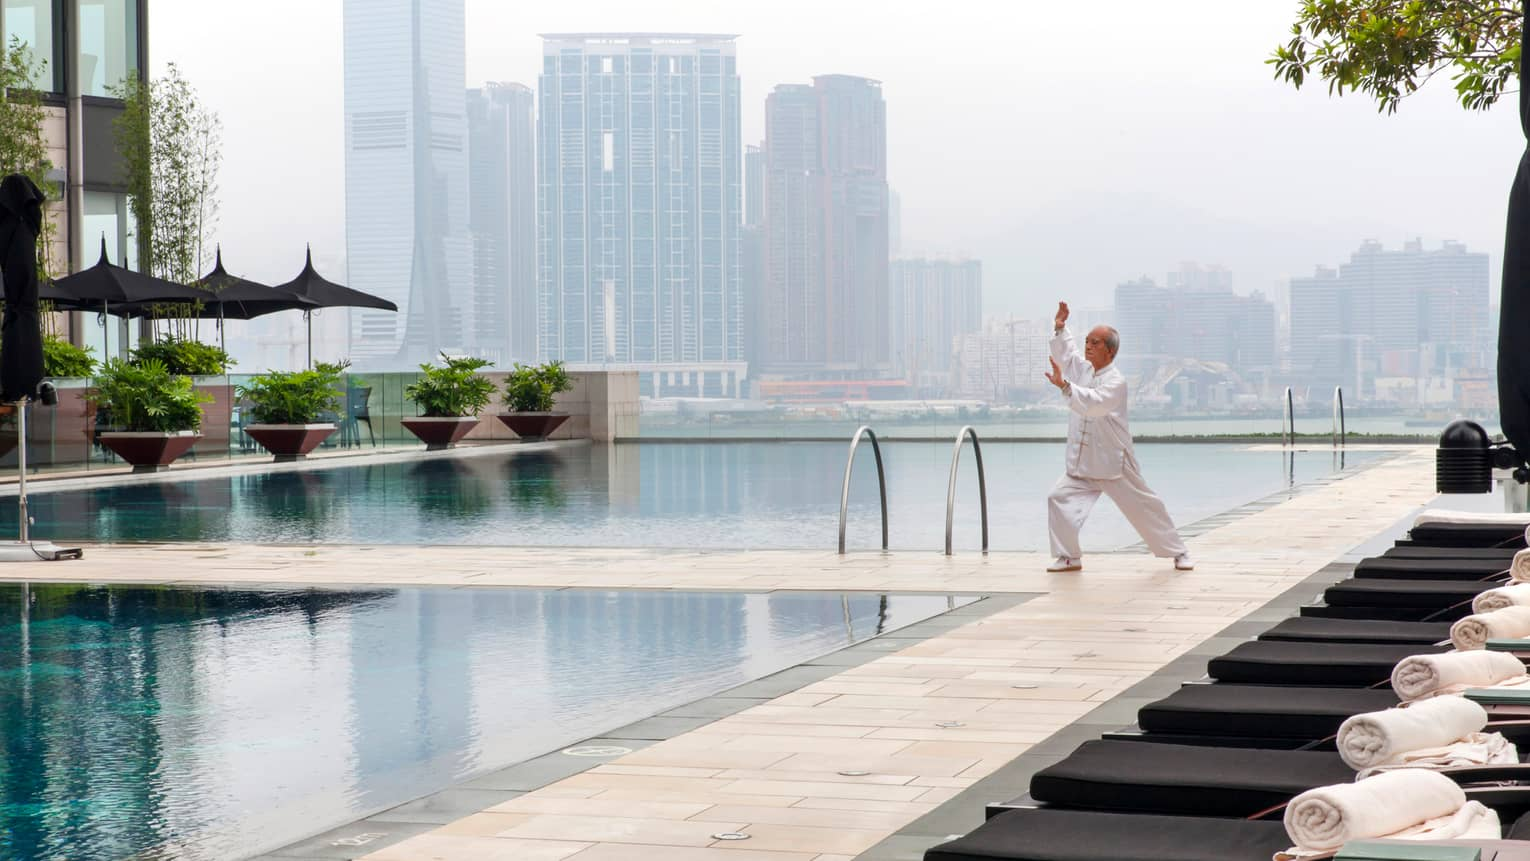 Tai Chi master wearing white holds pose on patio deck by swimming pools, misty skyline